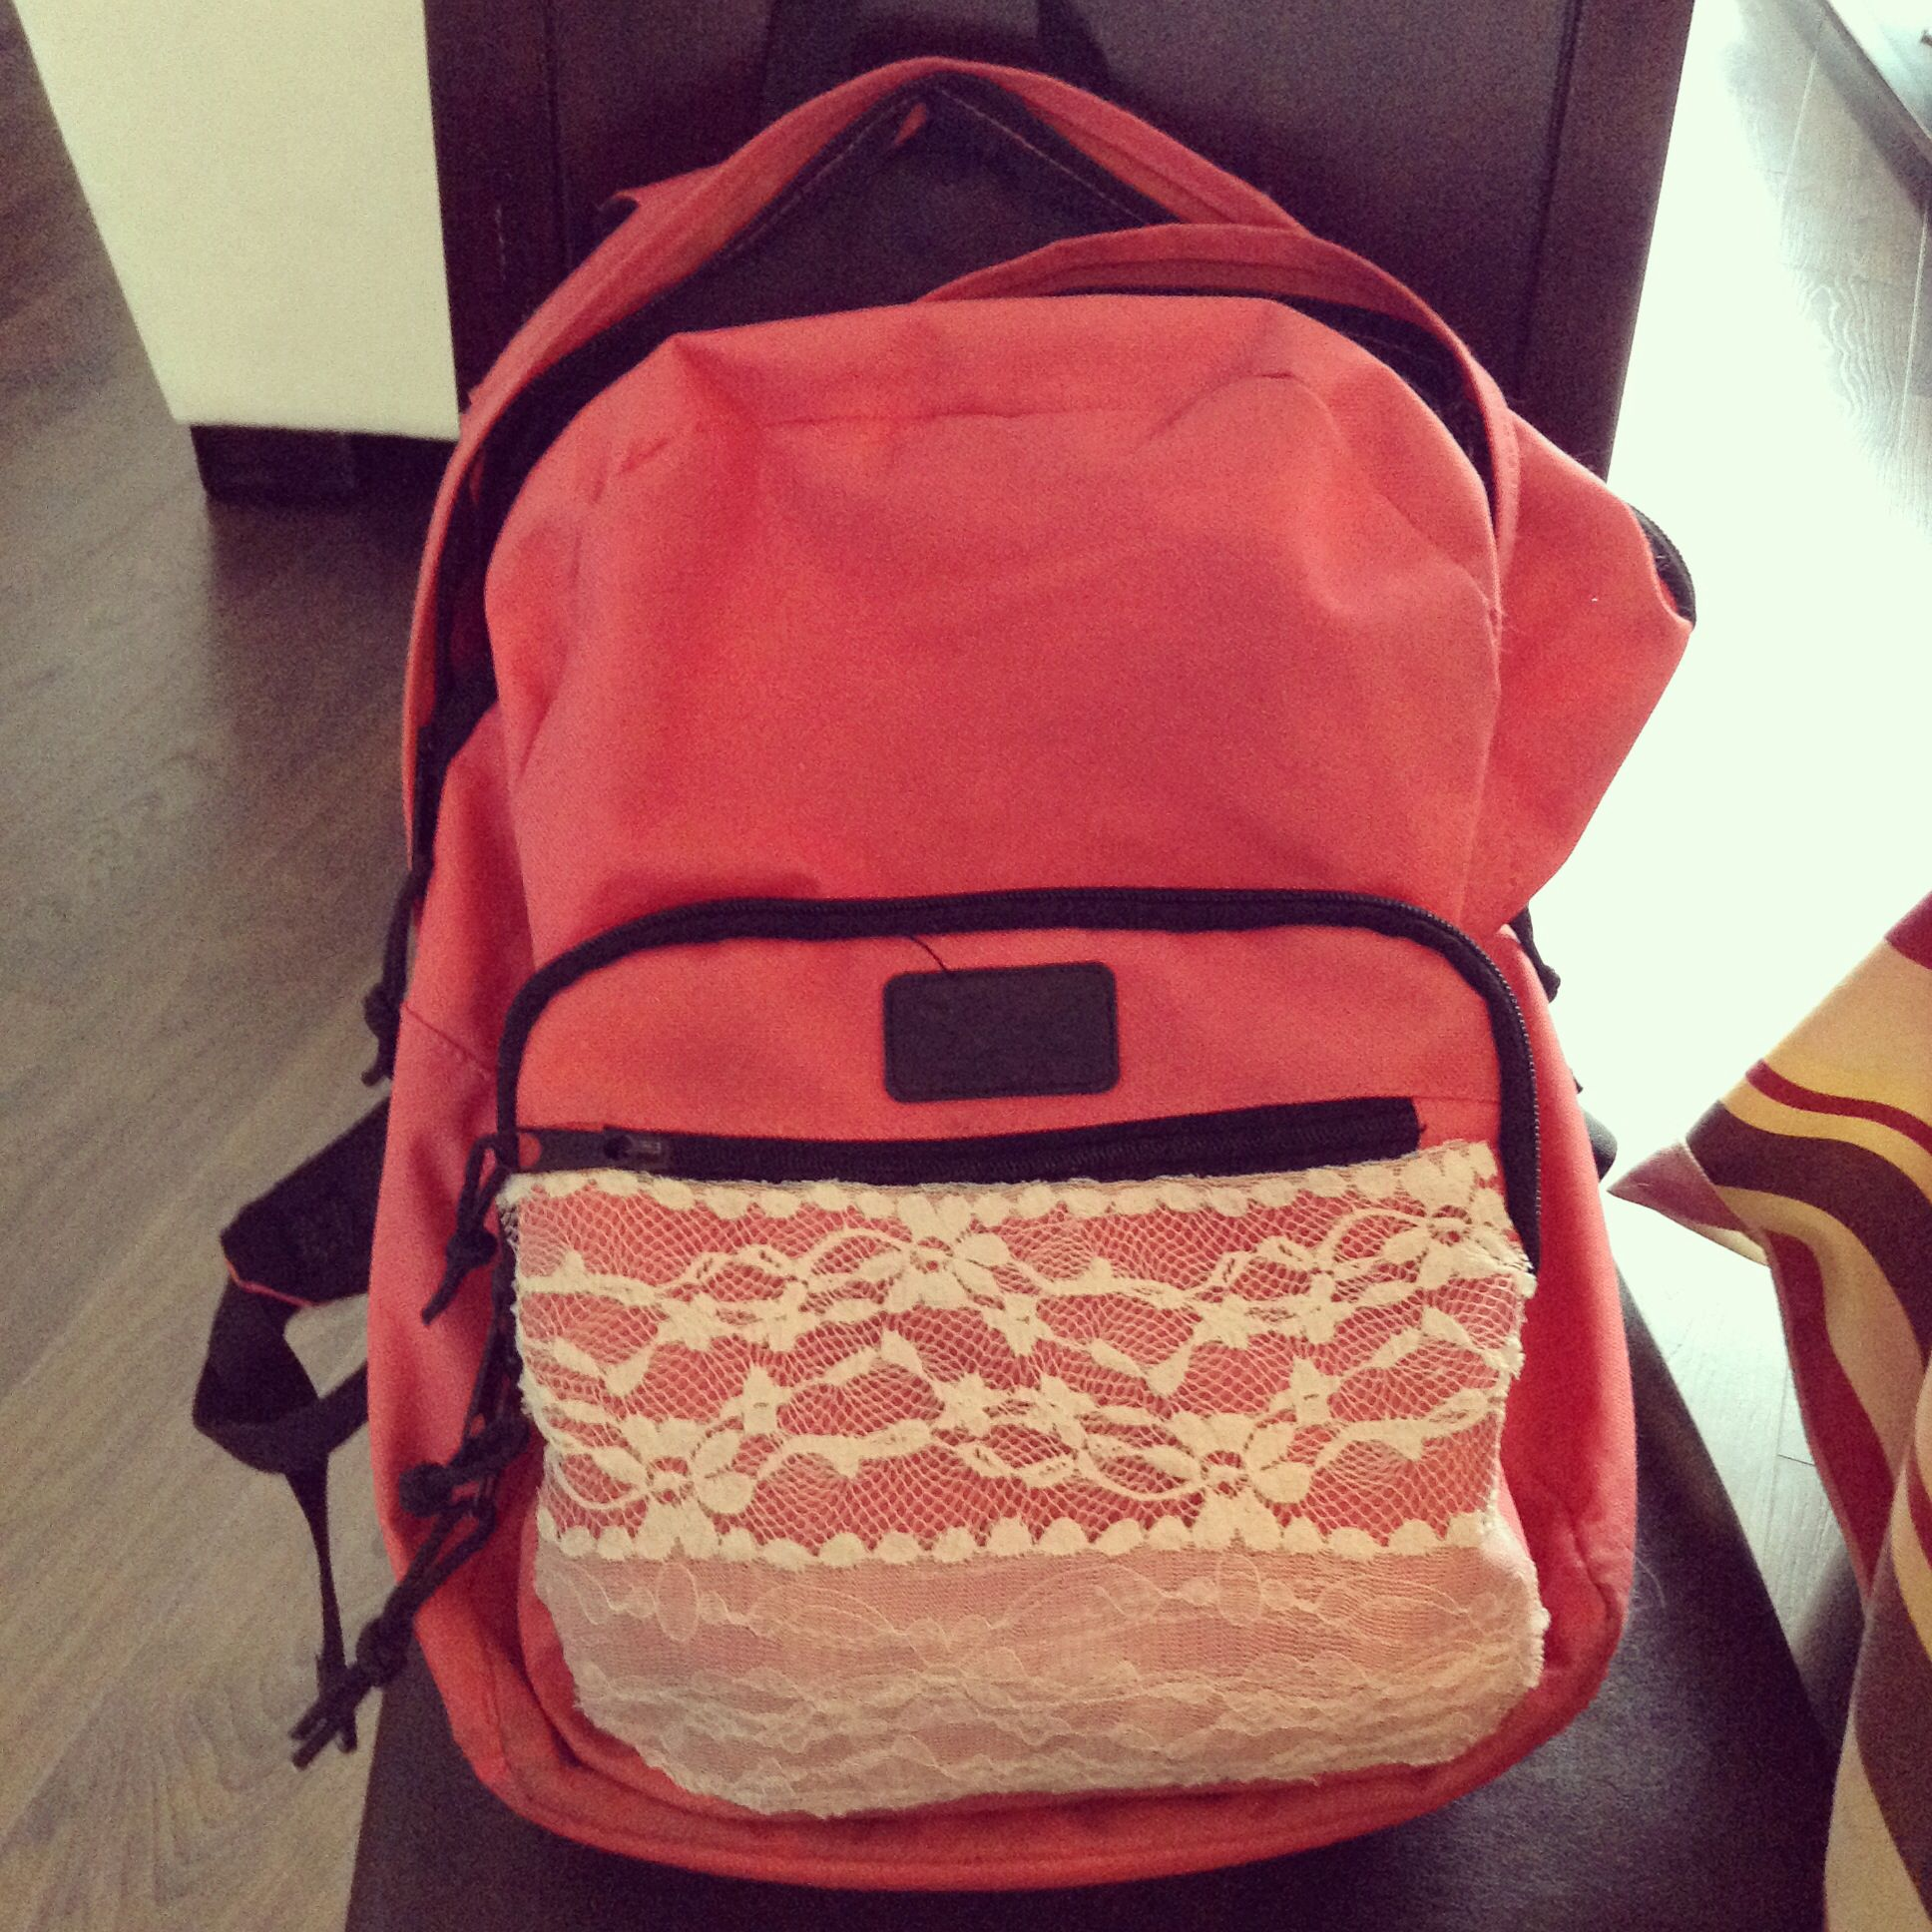 Added lace to my pink backpack!